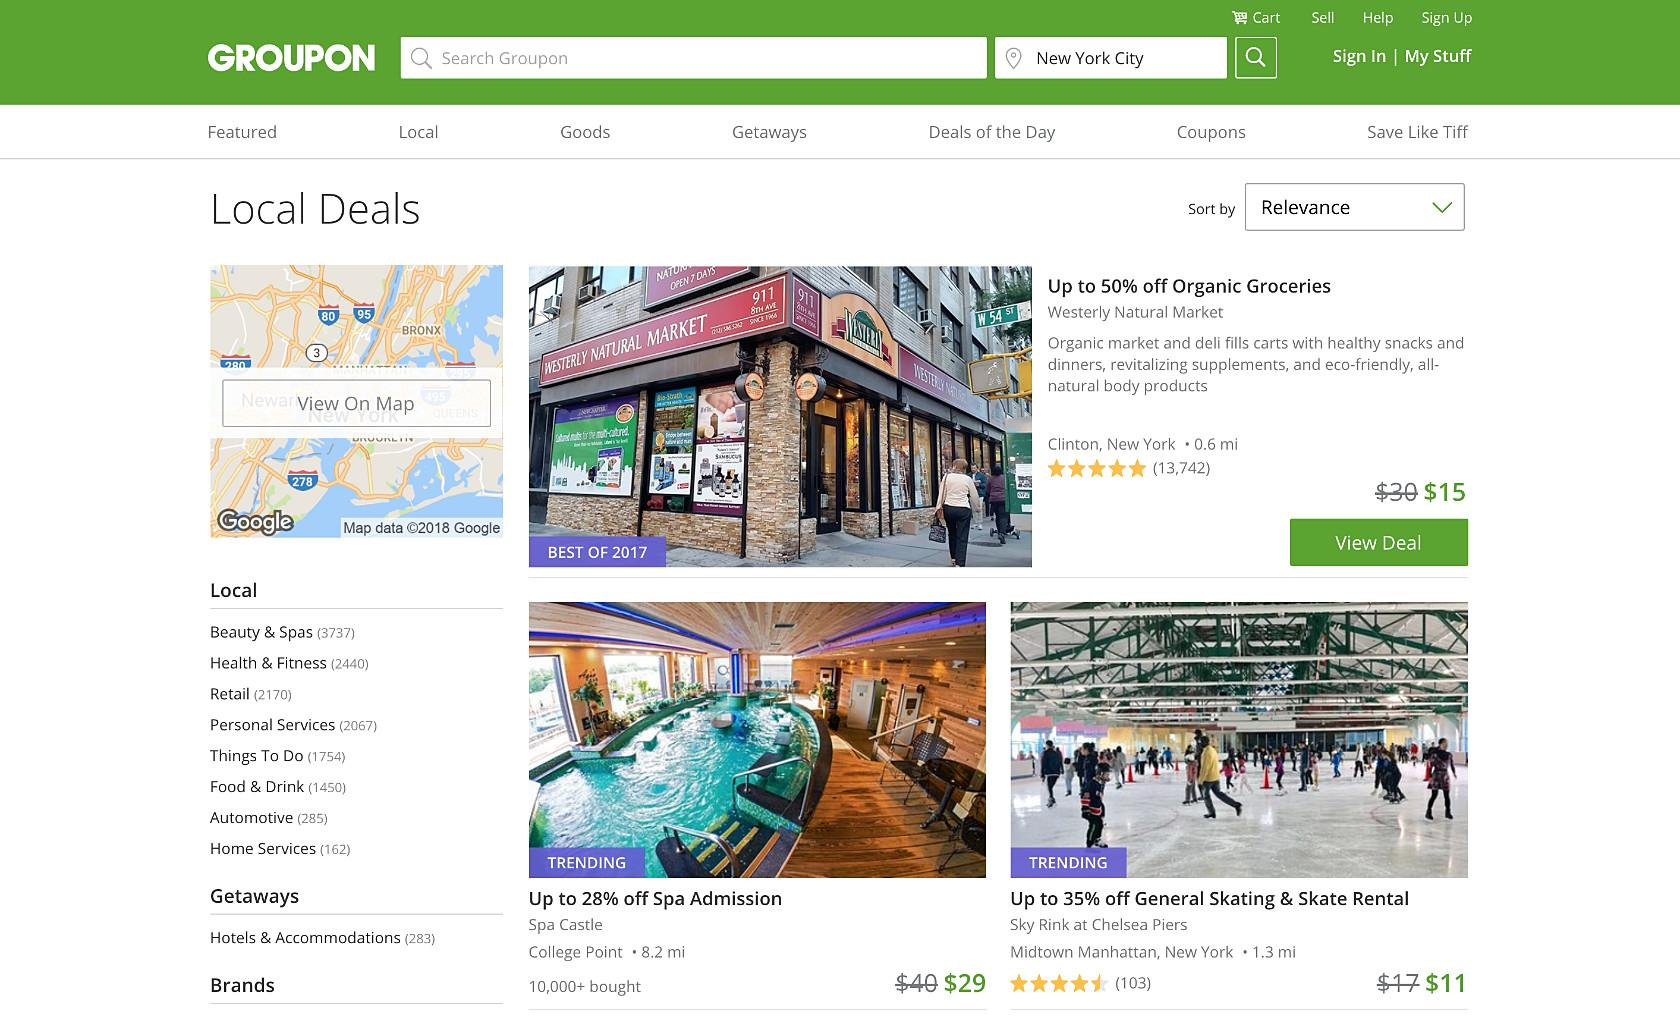 Gamification Design of Groupon's website